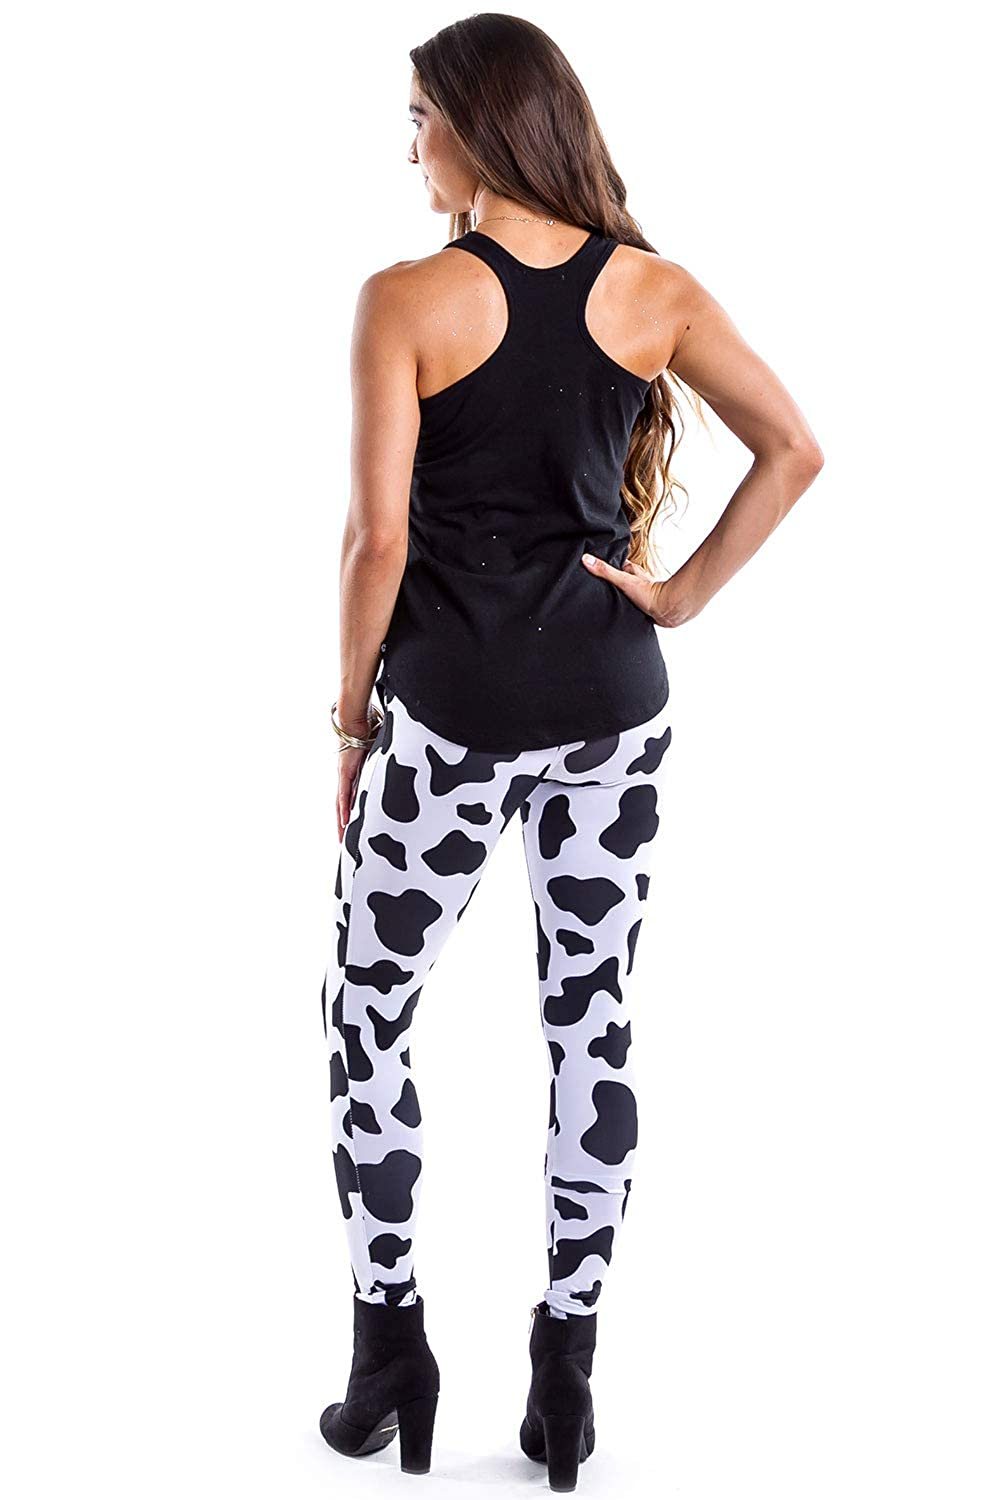 Tipsy Elves Womens Cow Leggings Adult Cow Print Tights Cow Halloween Costume